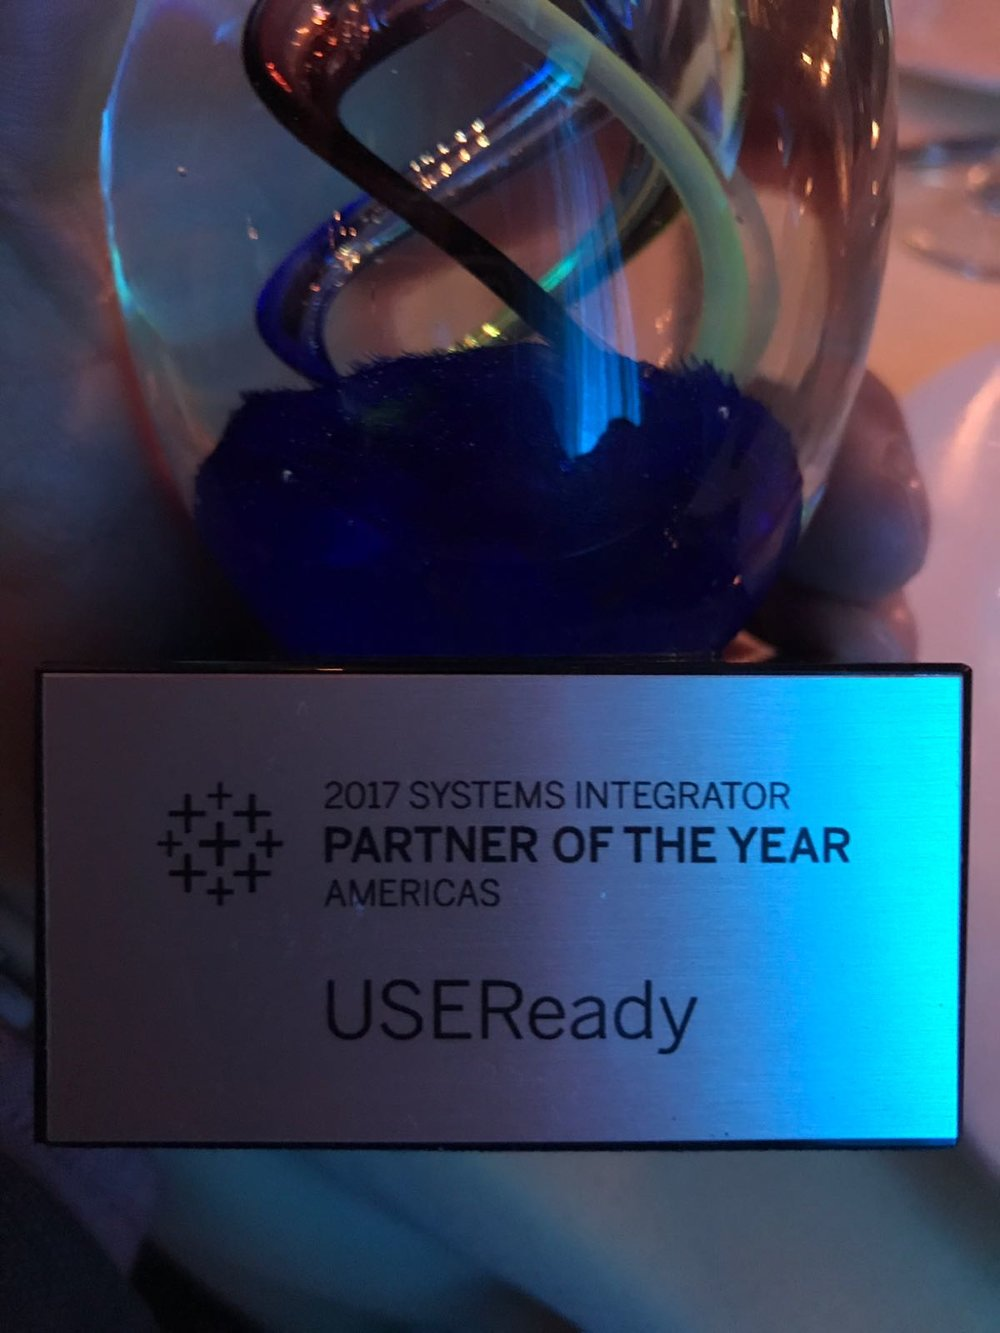 Tableau Partner of the year 2017-01 at 1.18.20 PM.jpeg